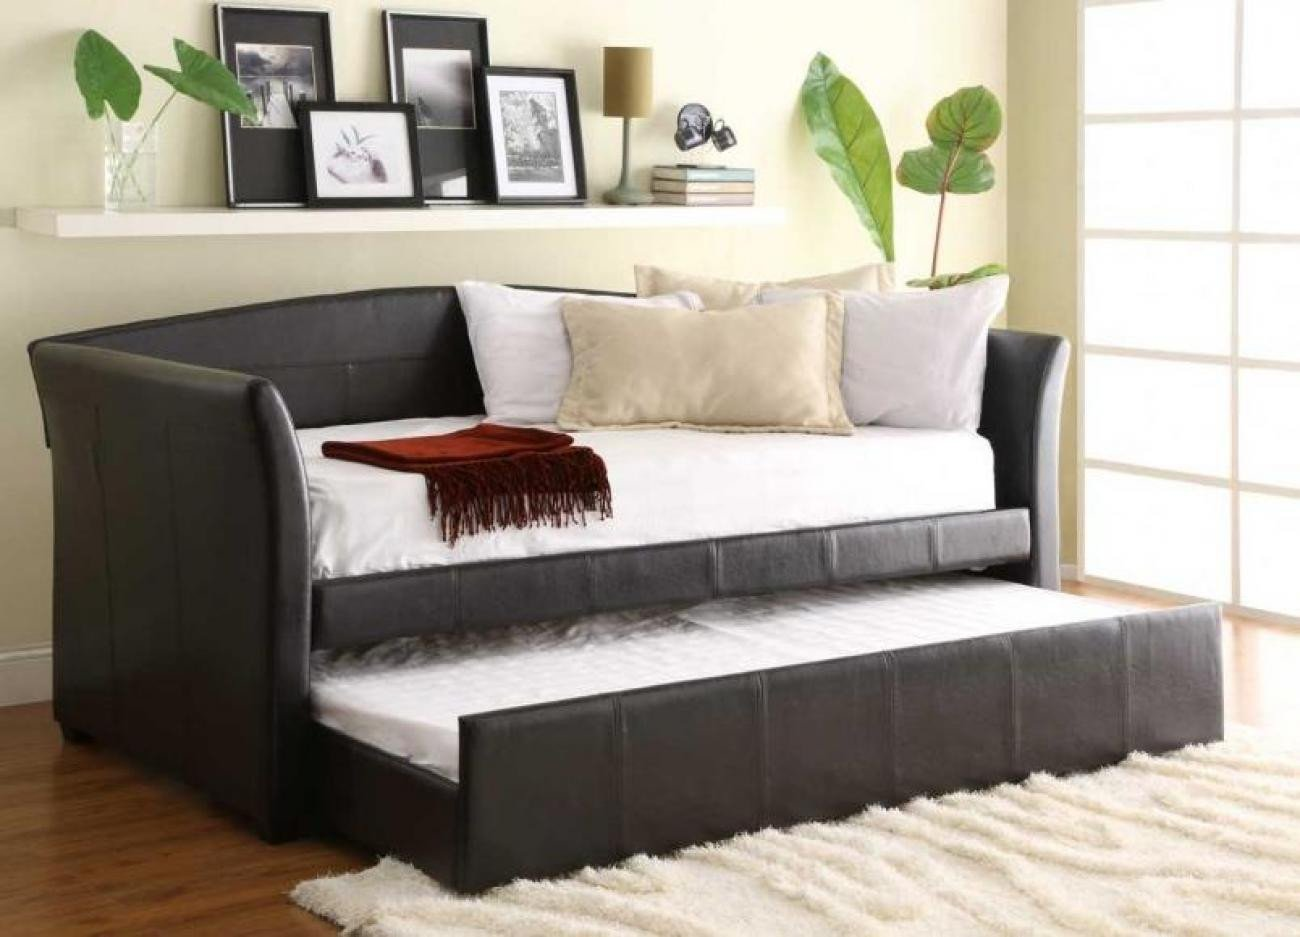 Comfortable Daybeds Living Room Appealing 5 fortable sofa Bed Models nowadays